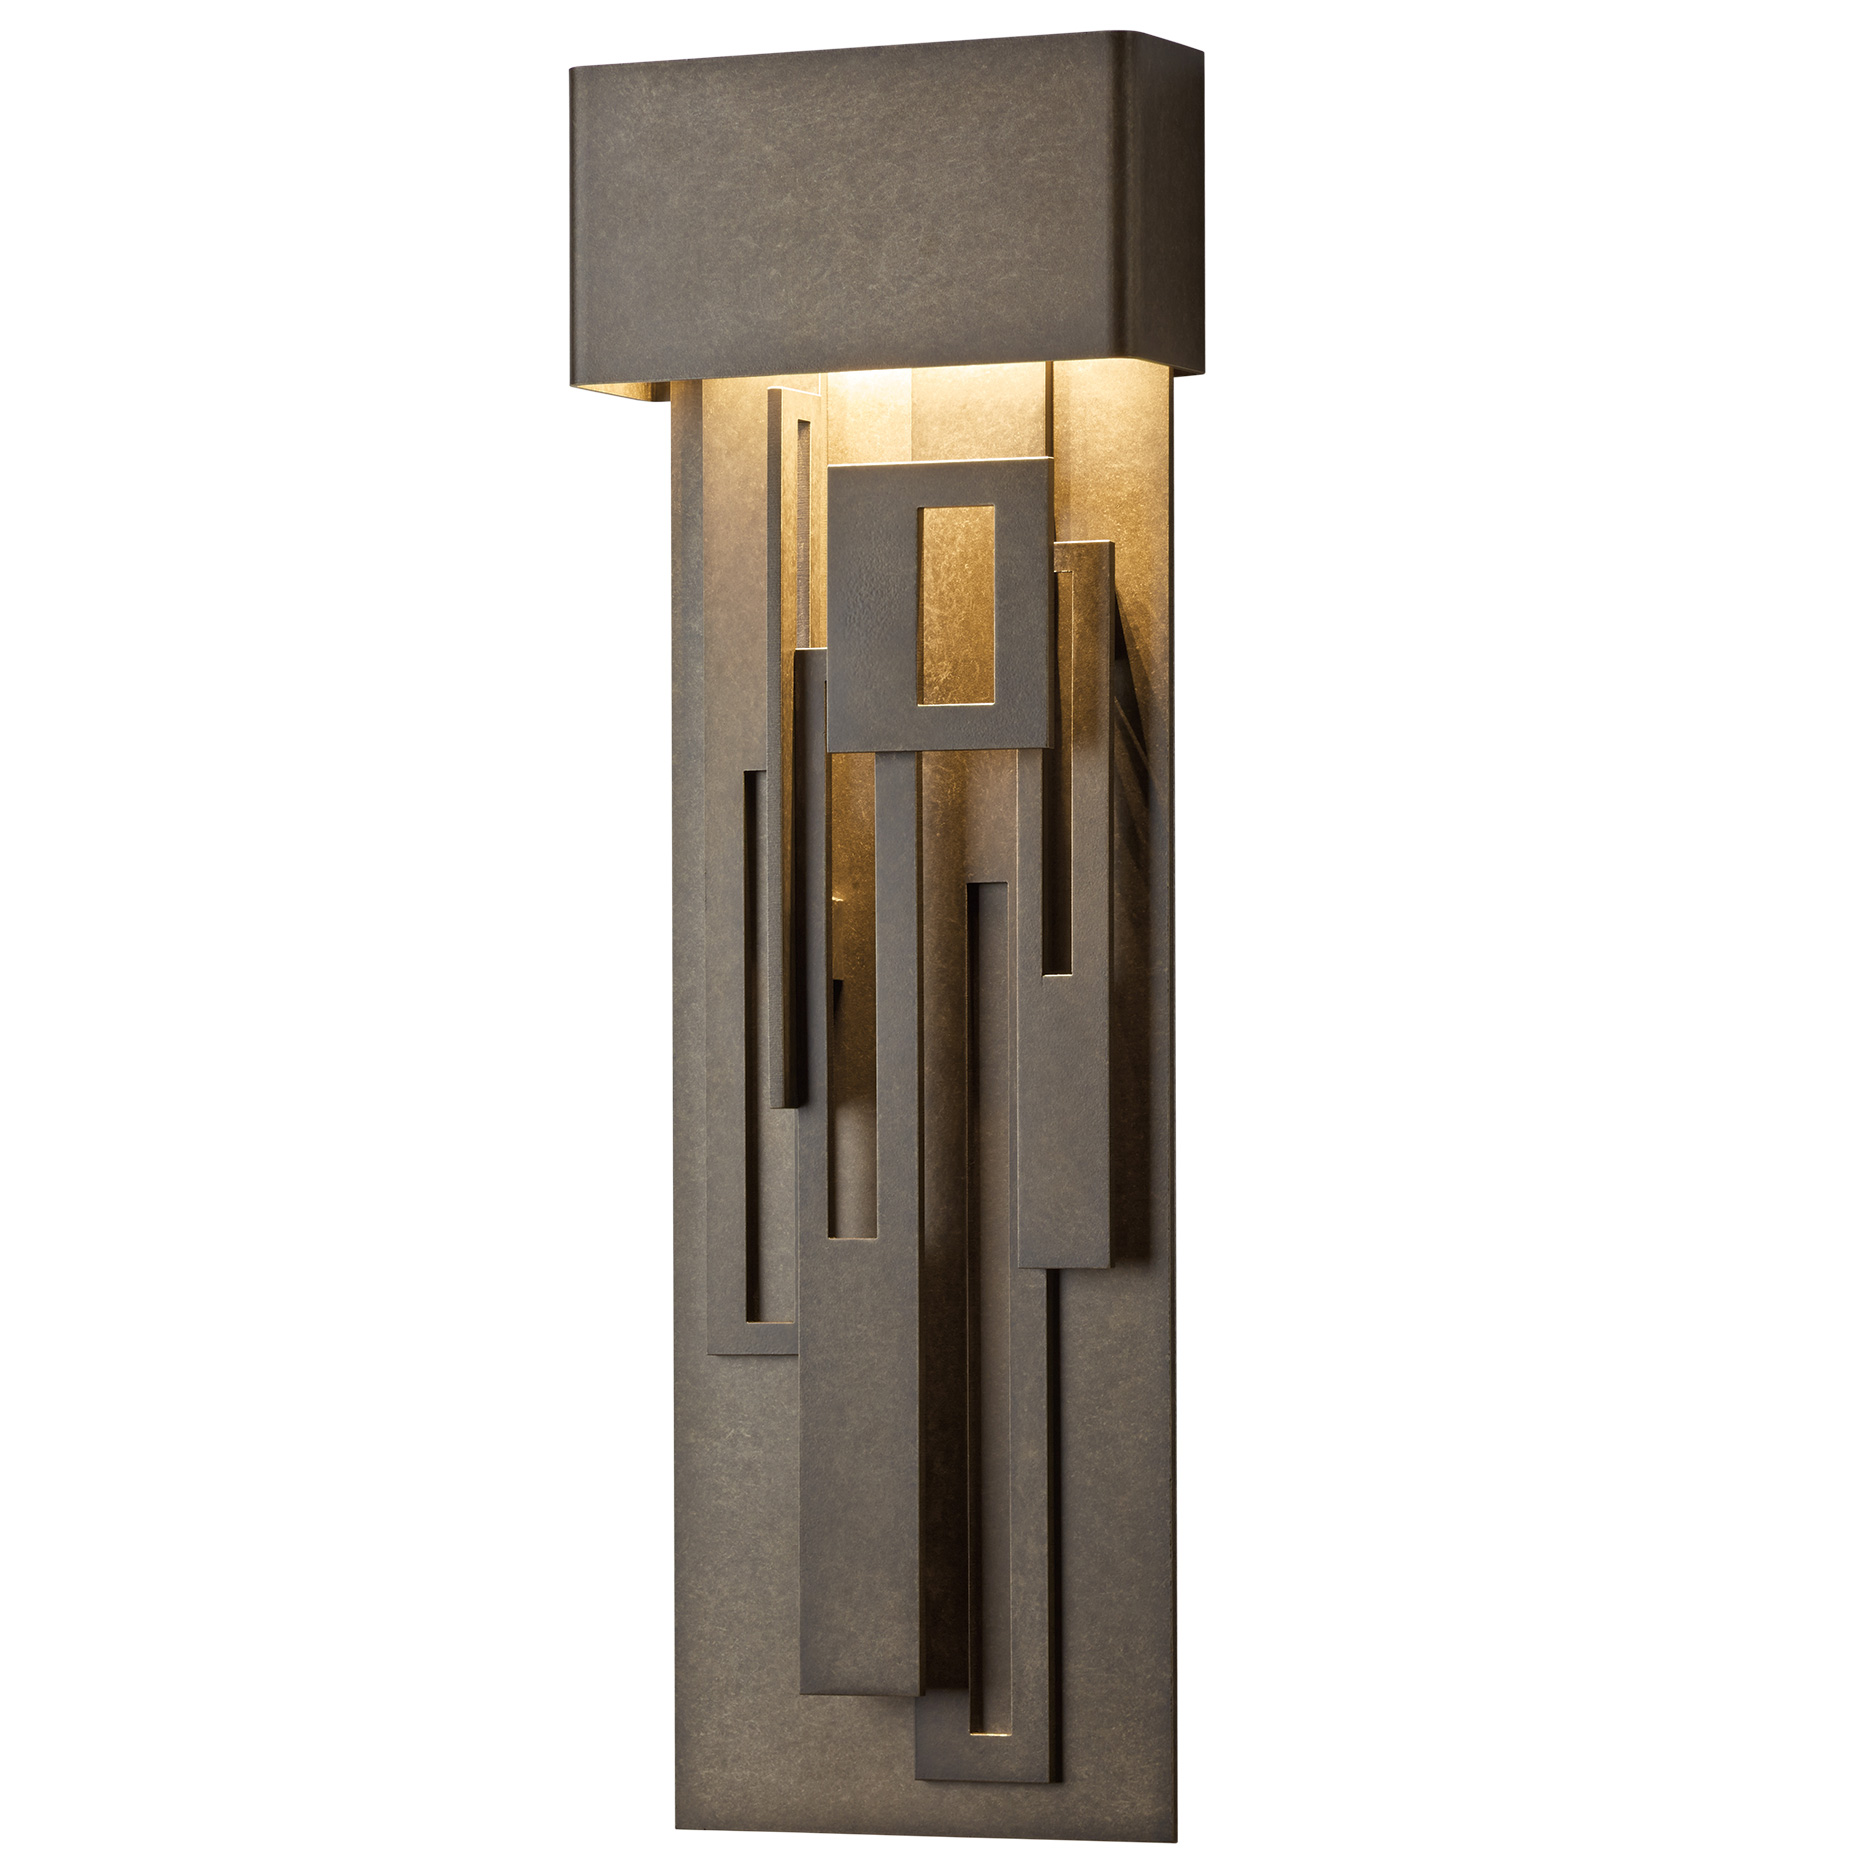 Large outdoor wall light by hubbardton forge 302523d 07 no collage large outdoor wall light by hubbardton forge 302523d 07 no mozeypictures Gallery